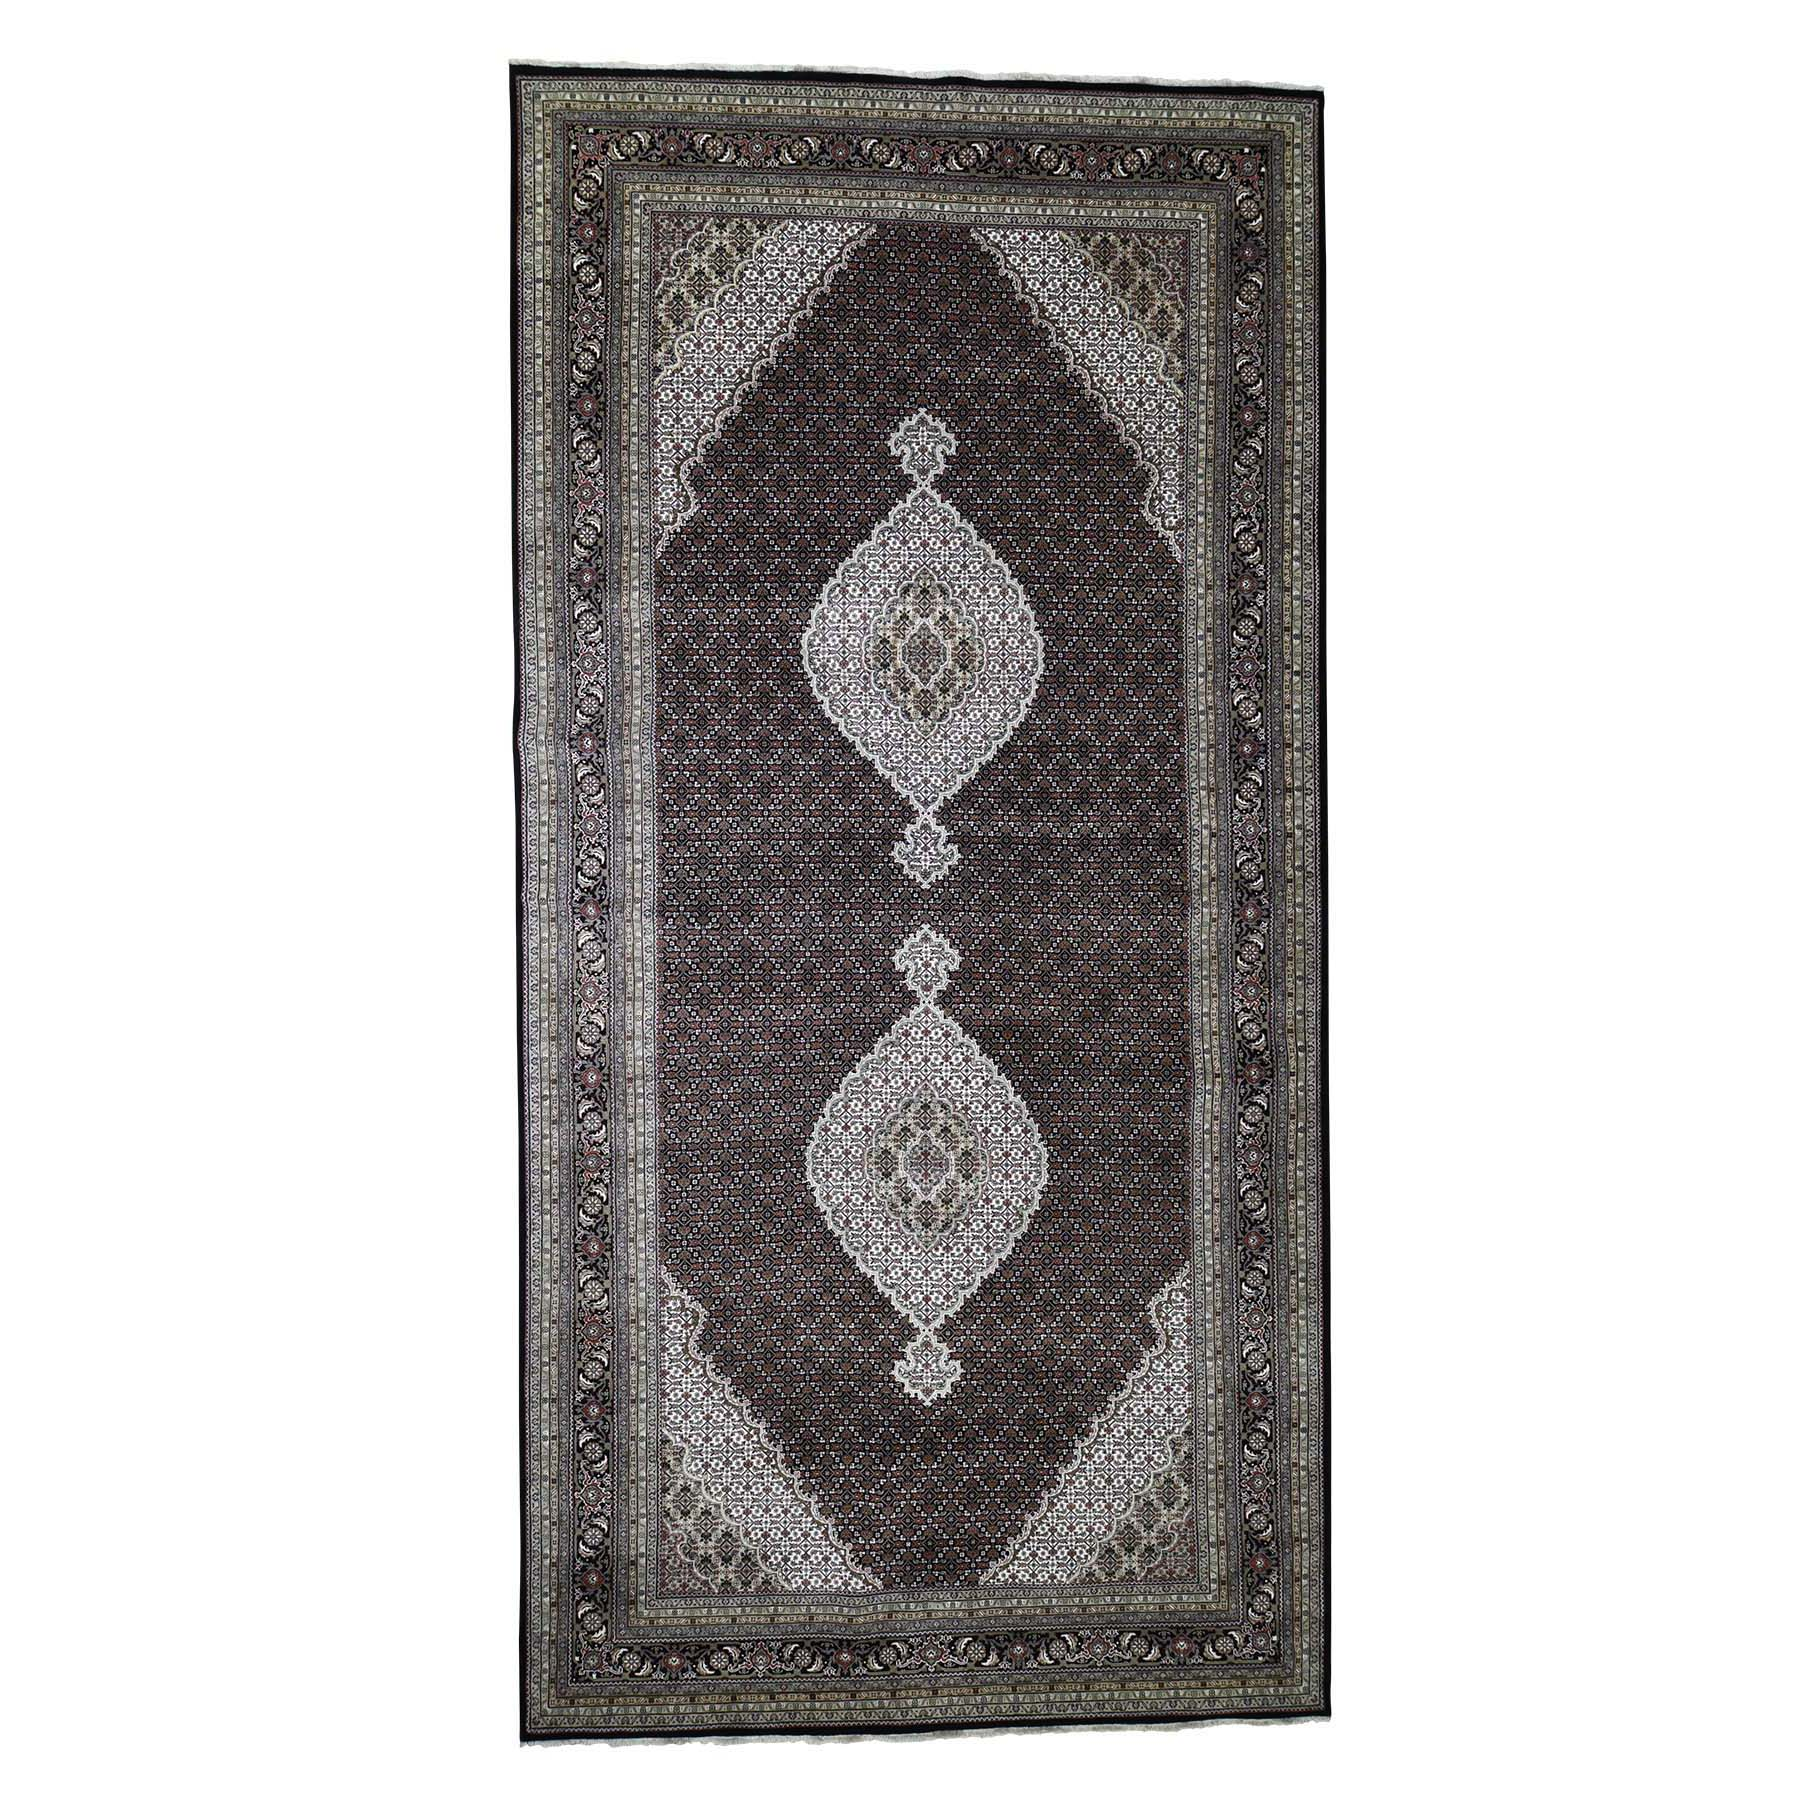 Pirniakan Collection Hand Knotted Black Rug No: 188314